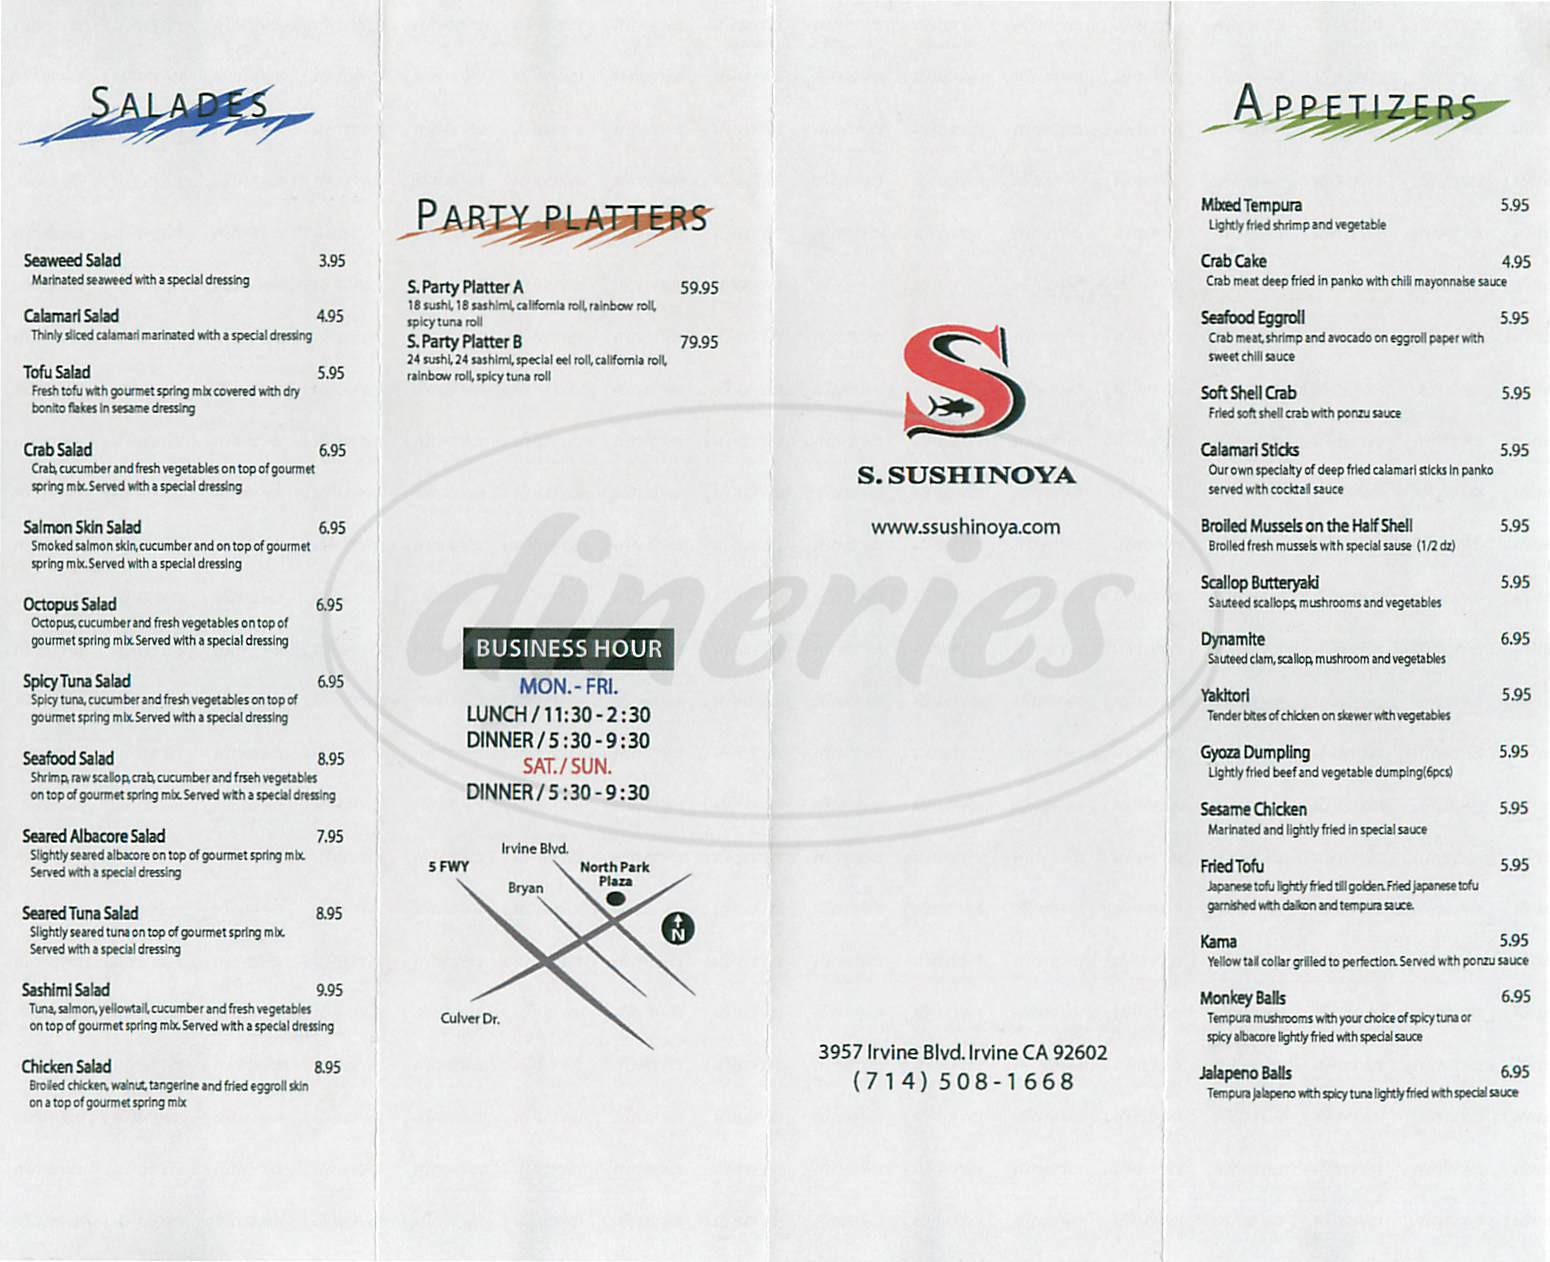 menu for S. Sushinoya